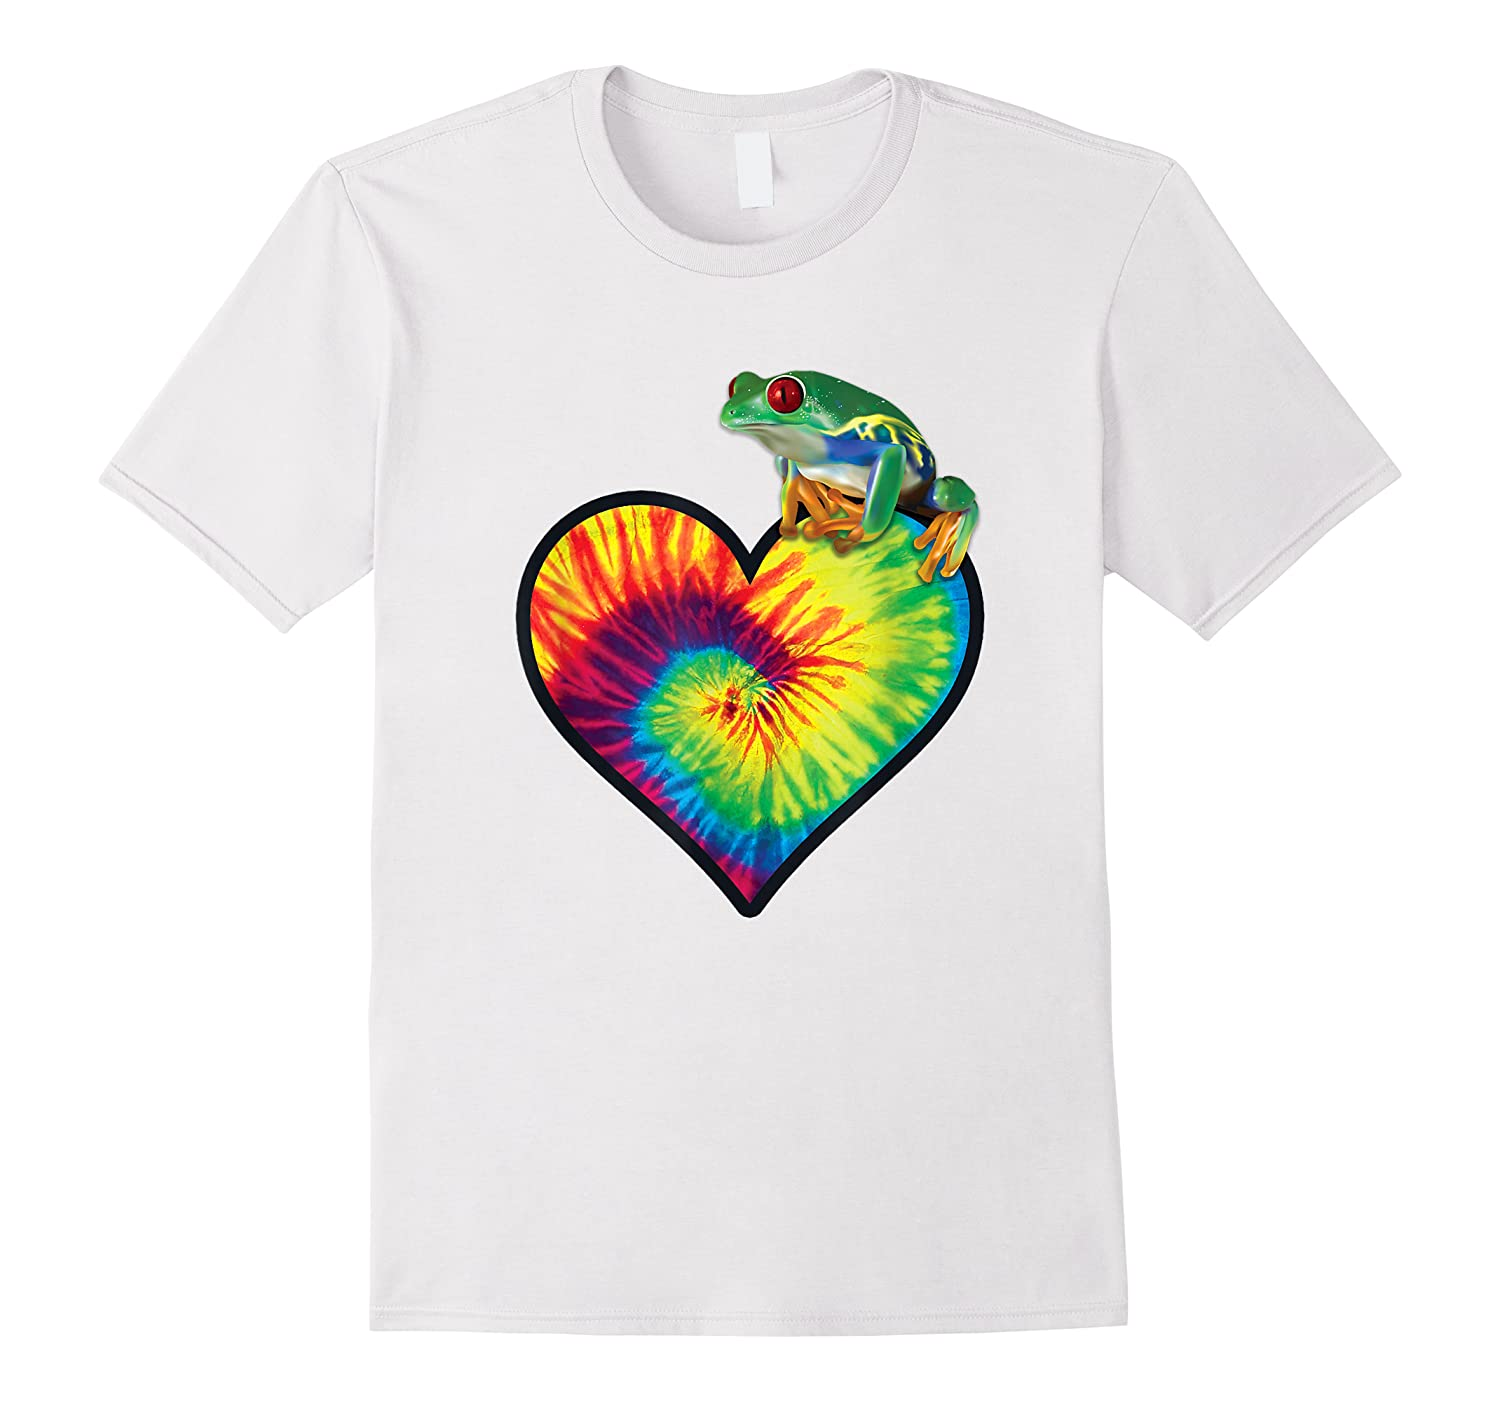 Tie-dye Heart Love Tree Frog Cute Funny Colorful T-shirt